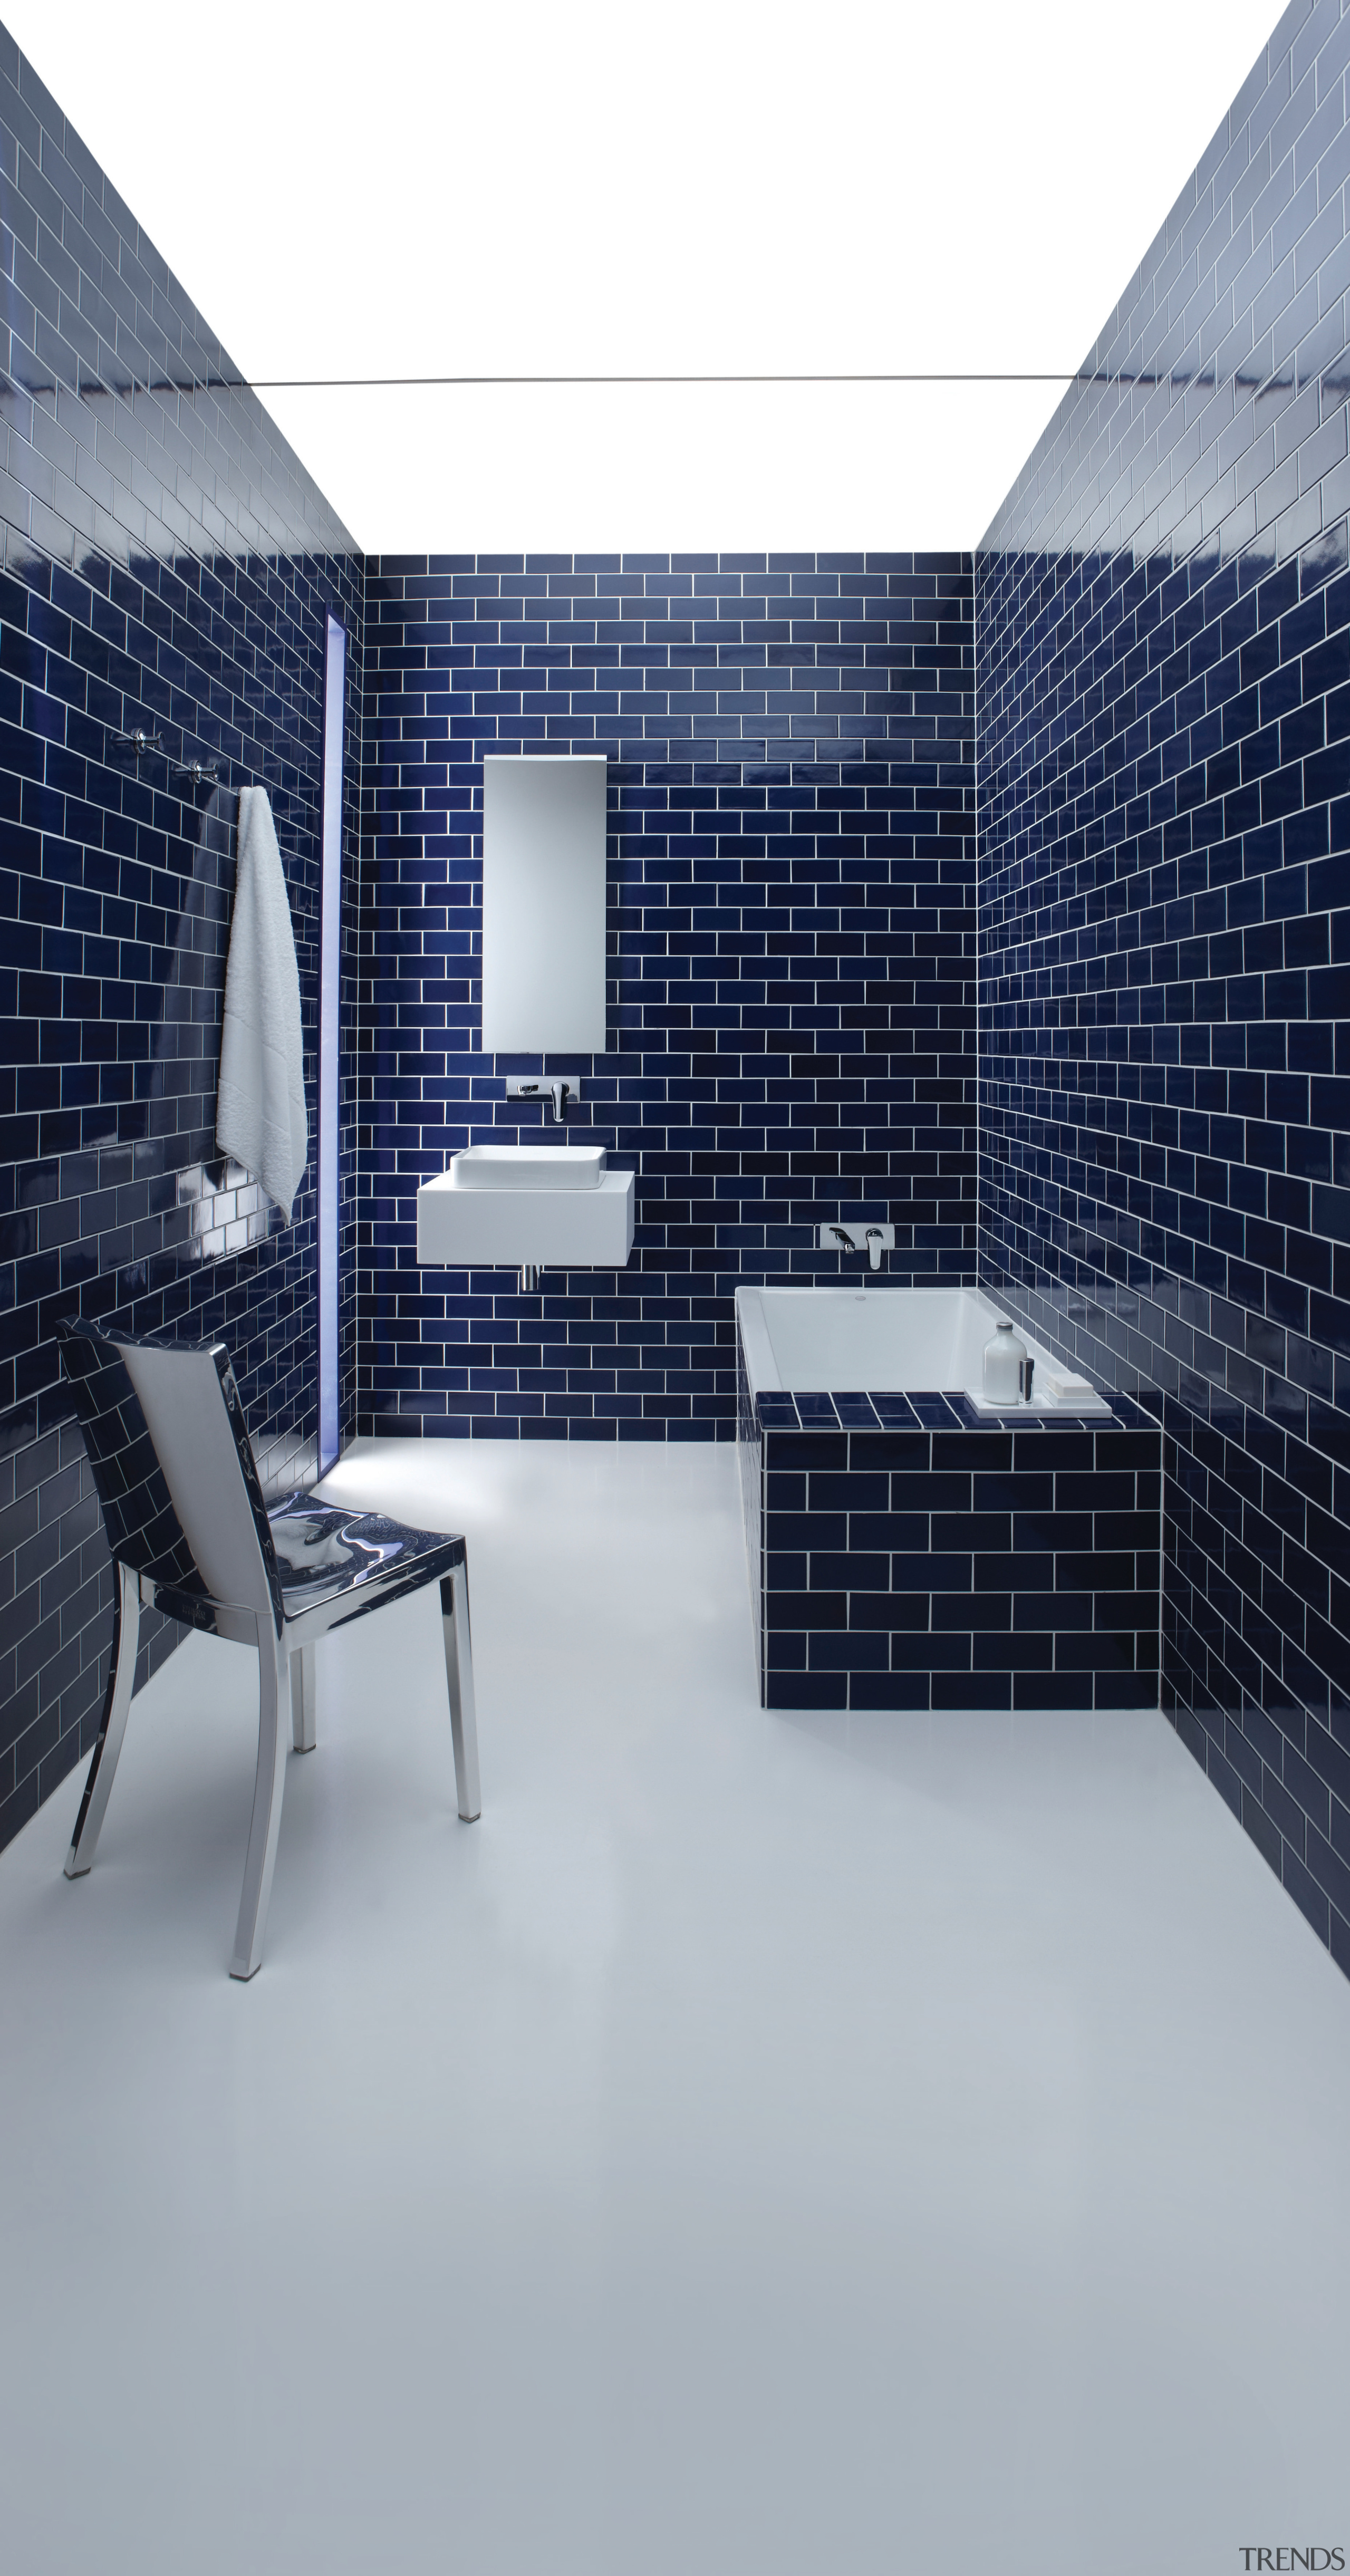 Kohler products feature in this dramatic bathroom. They architecture, daylighting, floor, flooring, furniture, interior design, product design, tile, wall, gray, blue